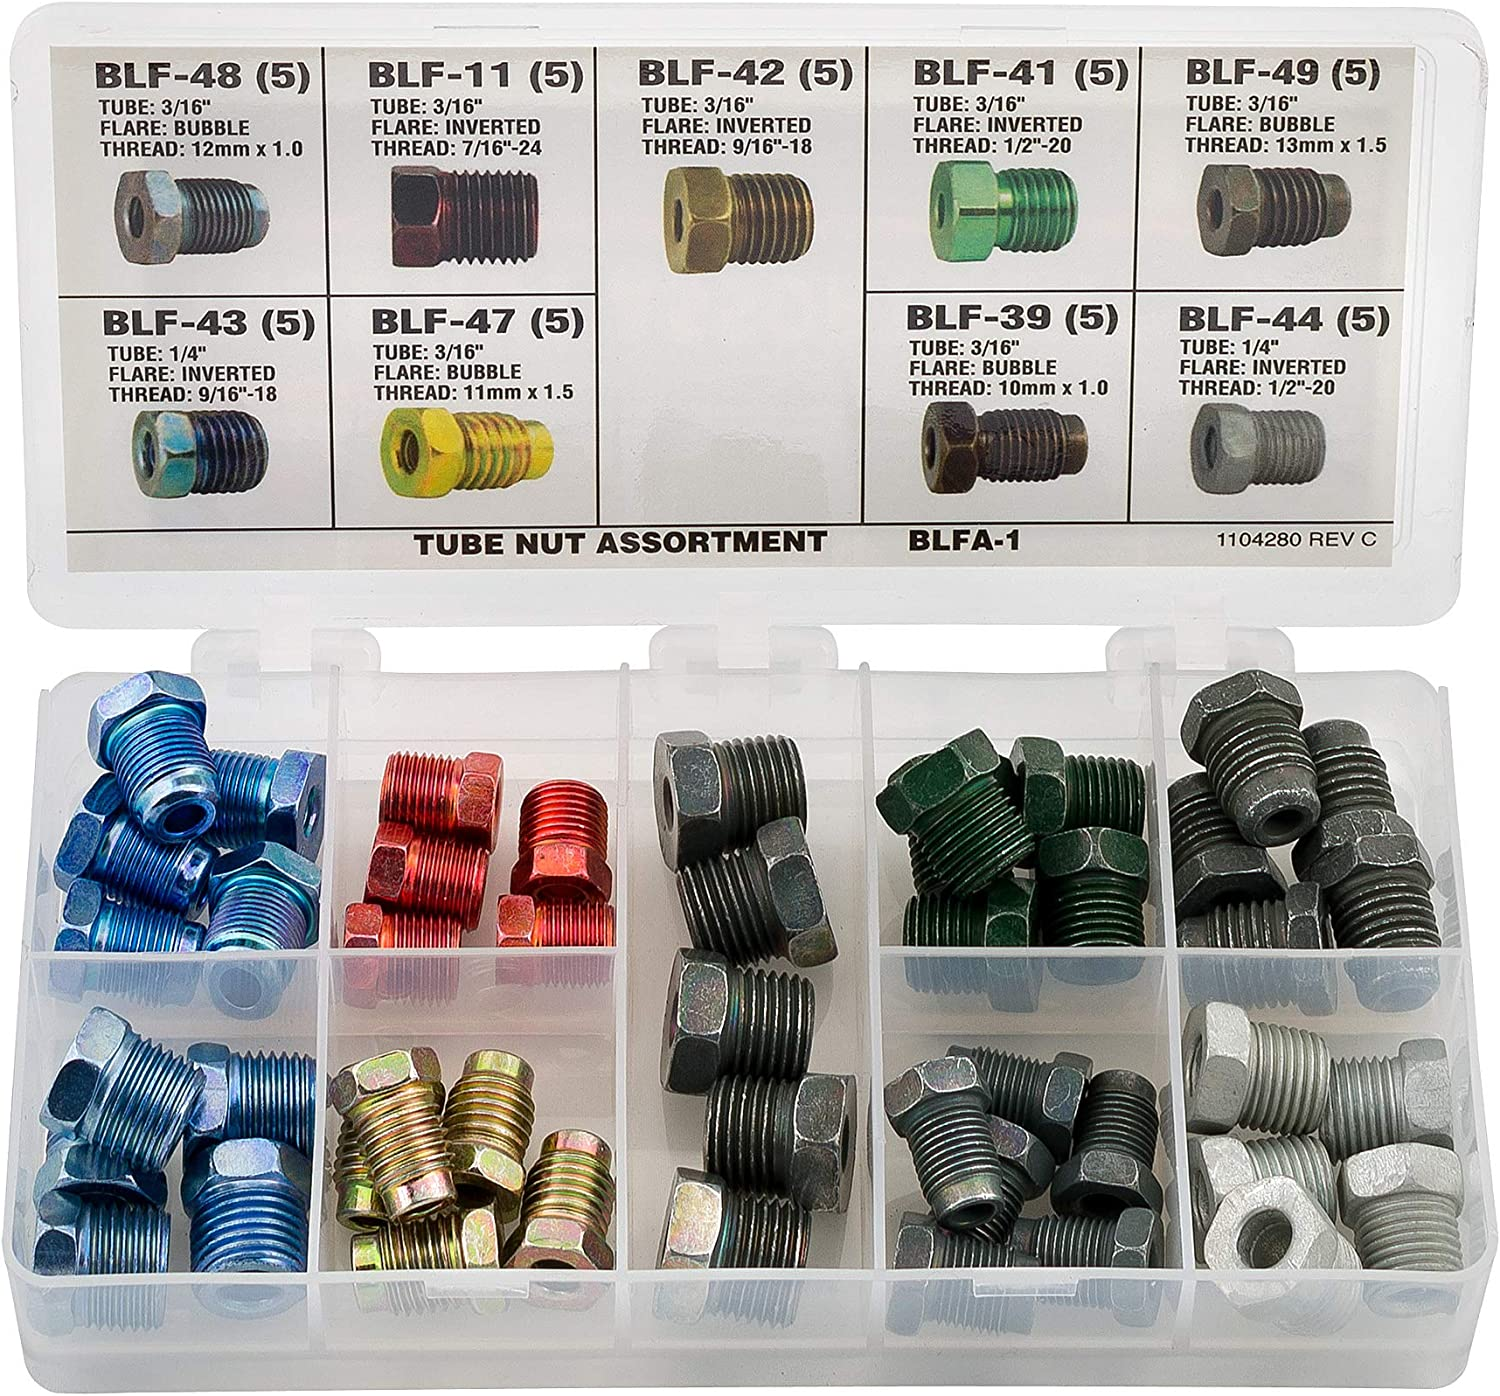 BRAKE LINE FITTING ASSORTMENT NUTS METRIC AND STANDARD IN METAL TRAY ADAPTERS